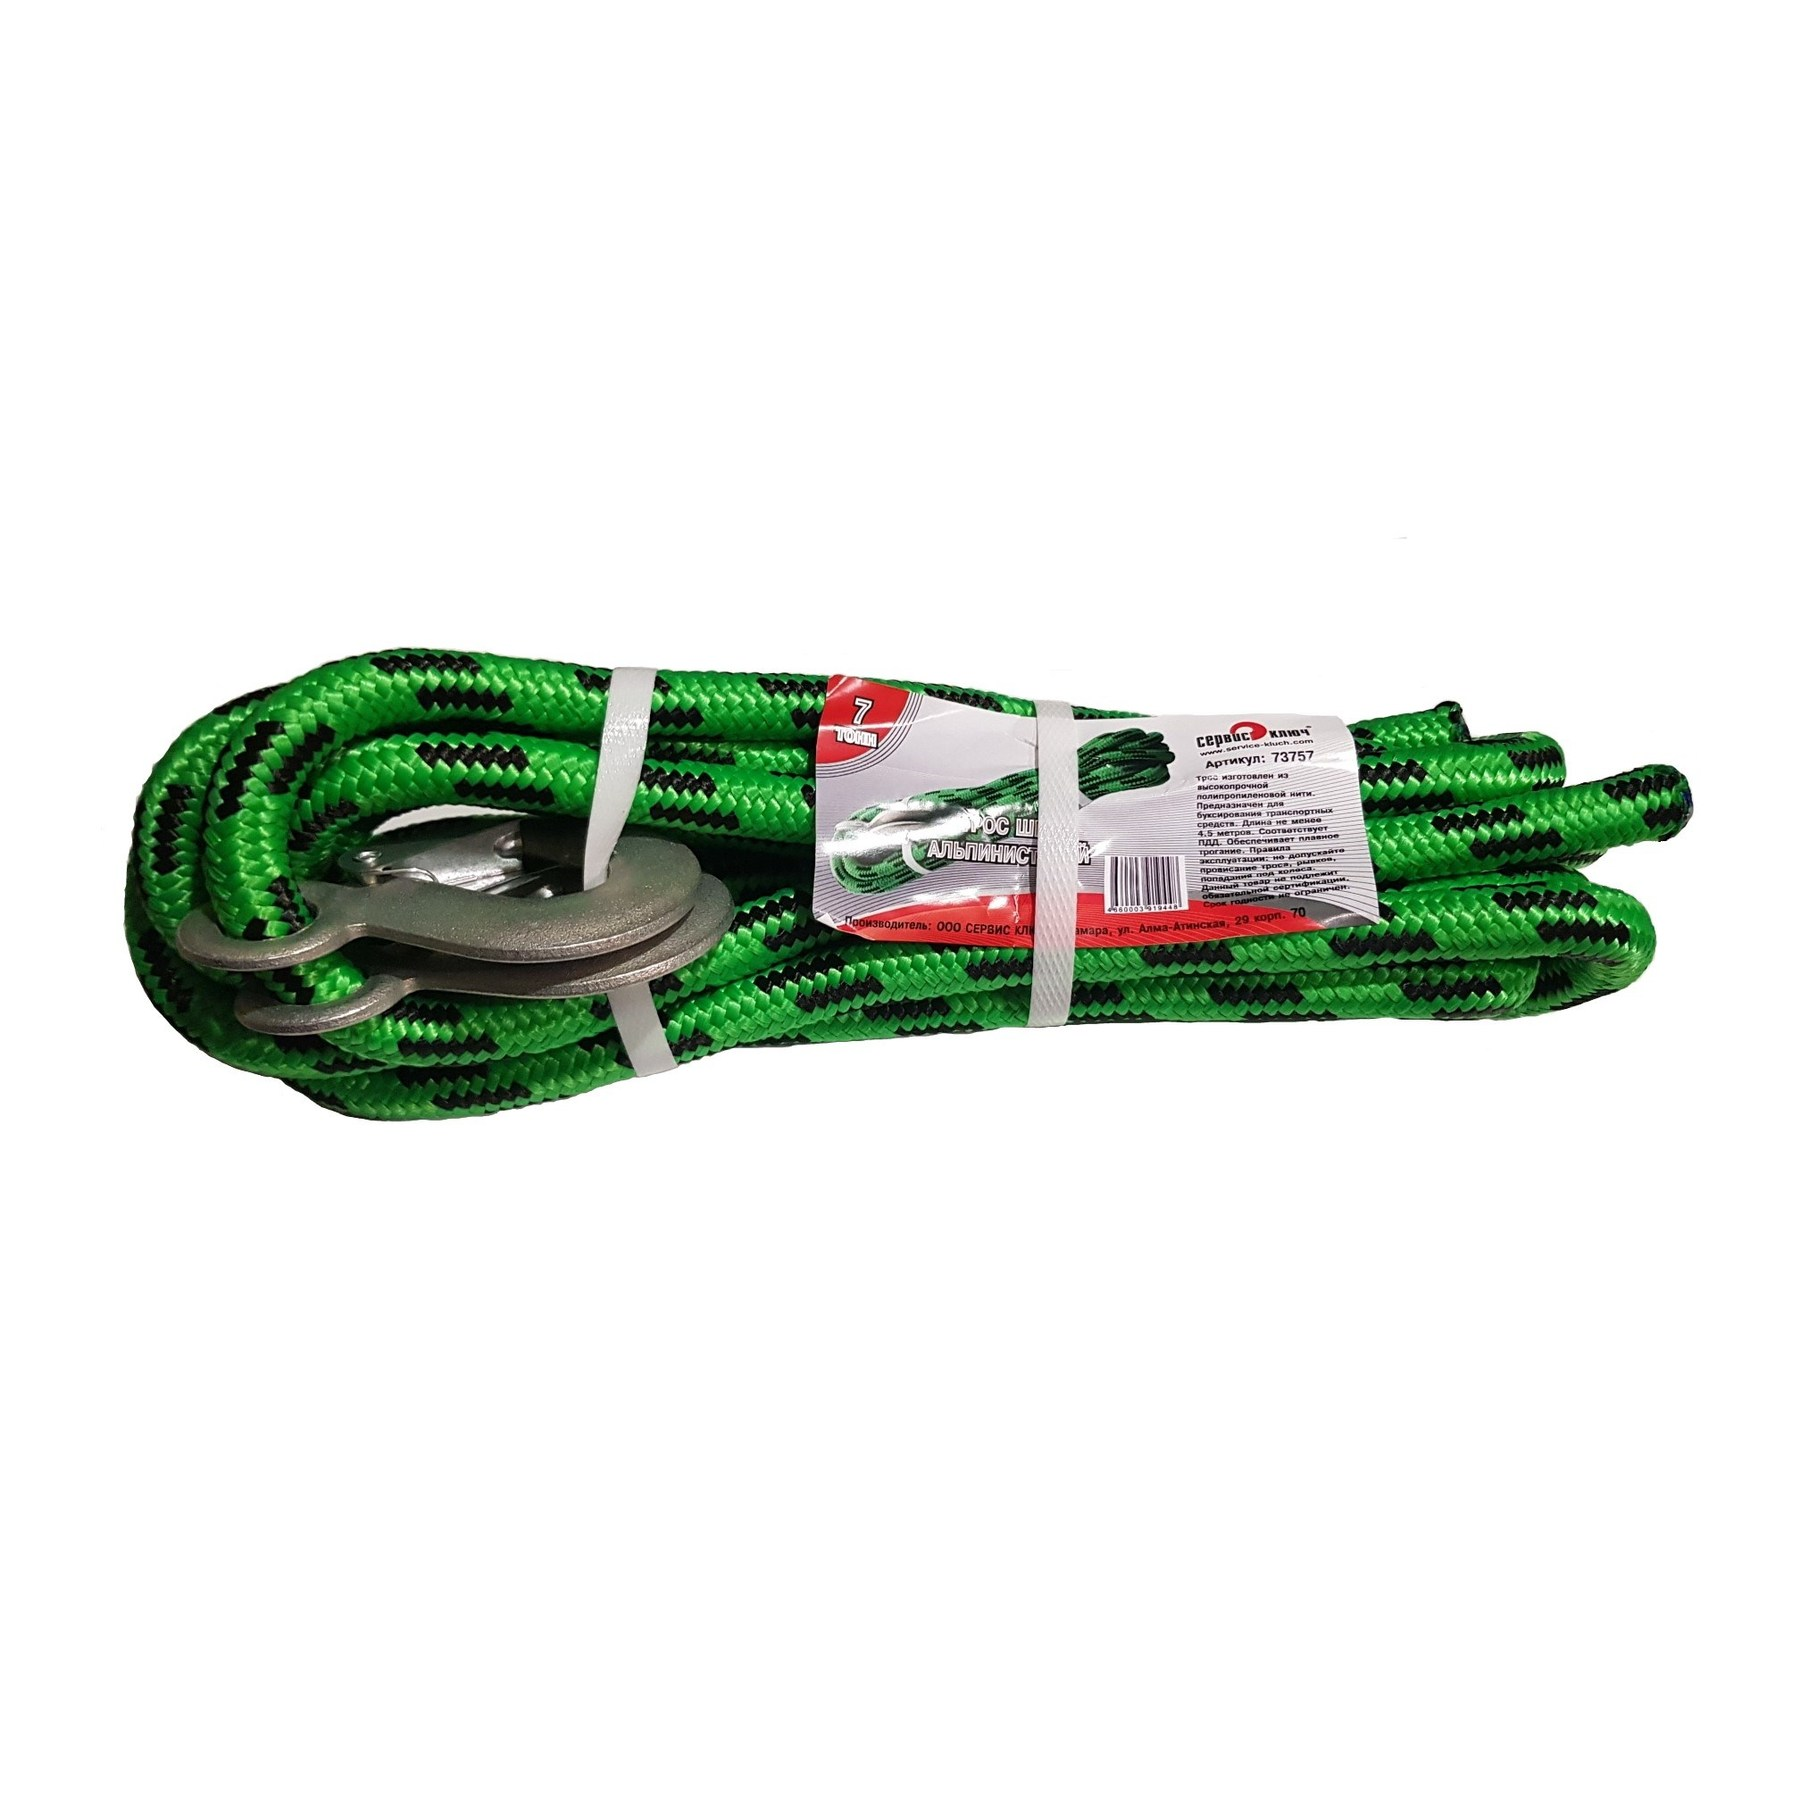 Tow Rope Lanyard Climbing 7 Ton (hook) Tools Wrench 73757